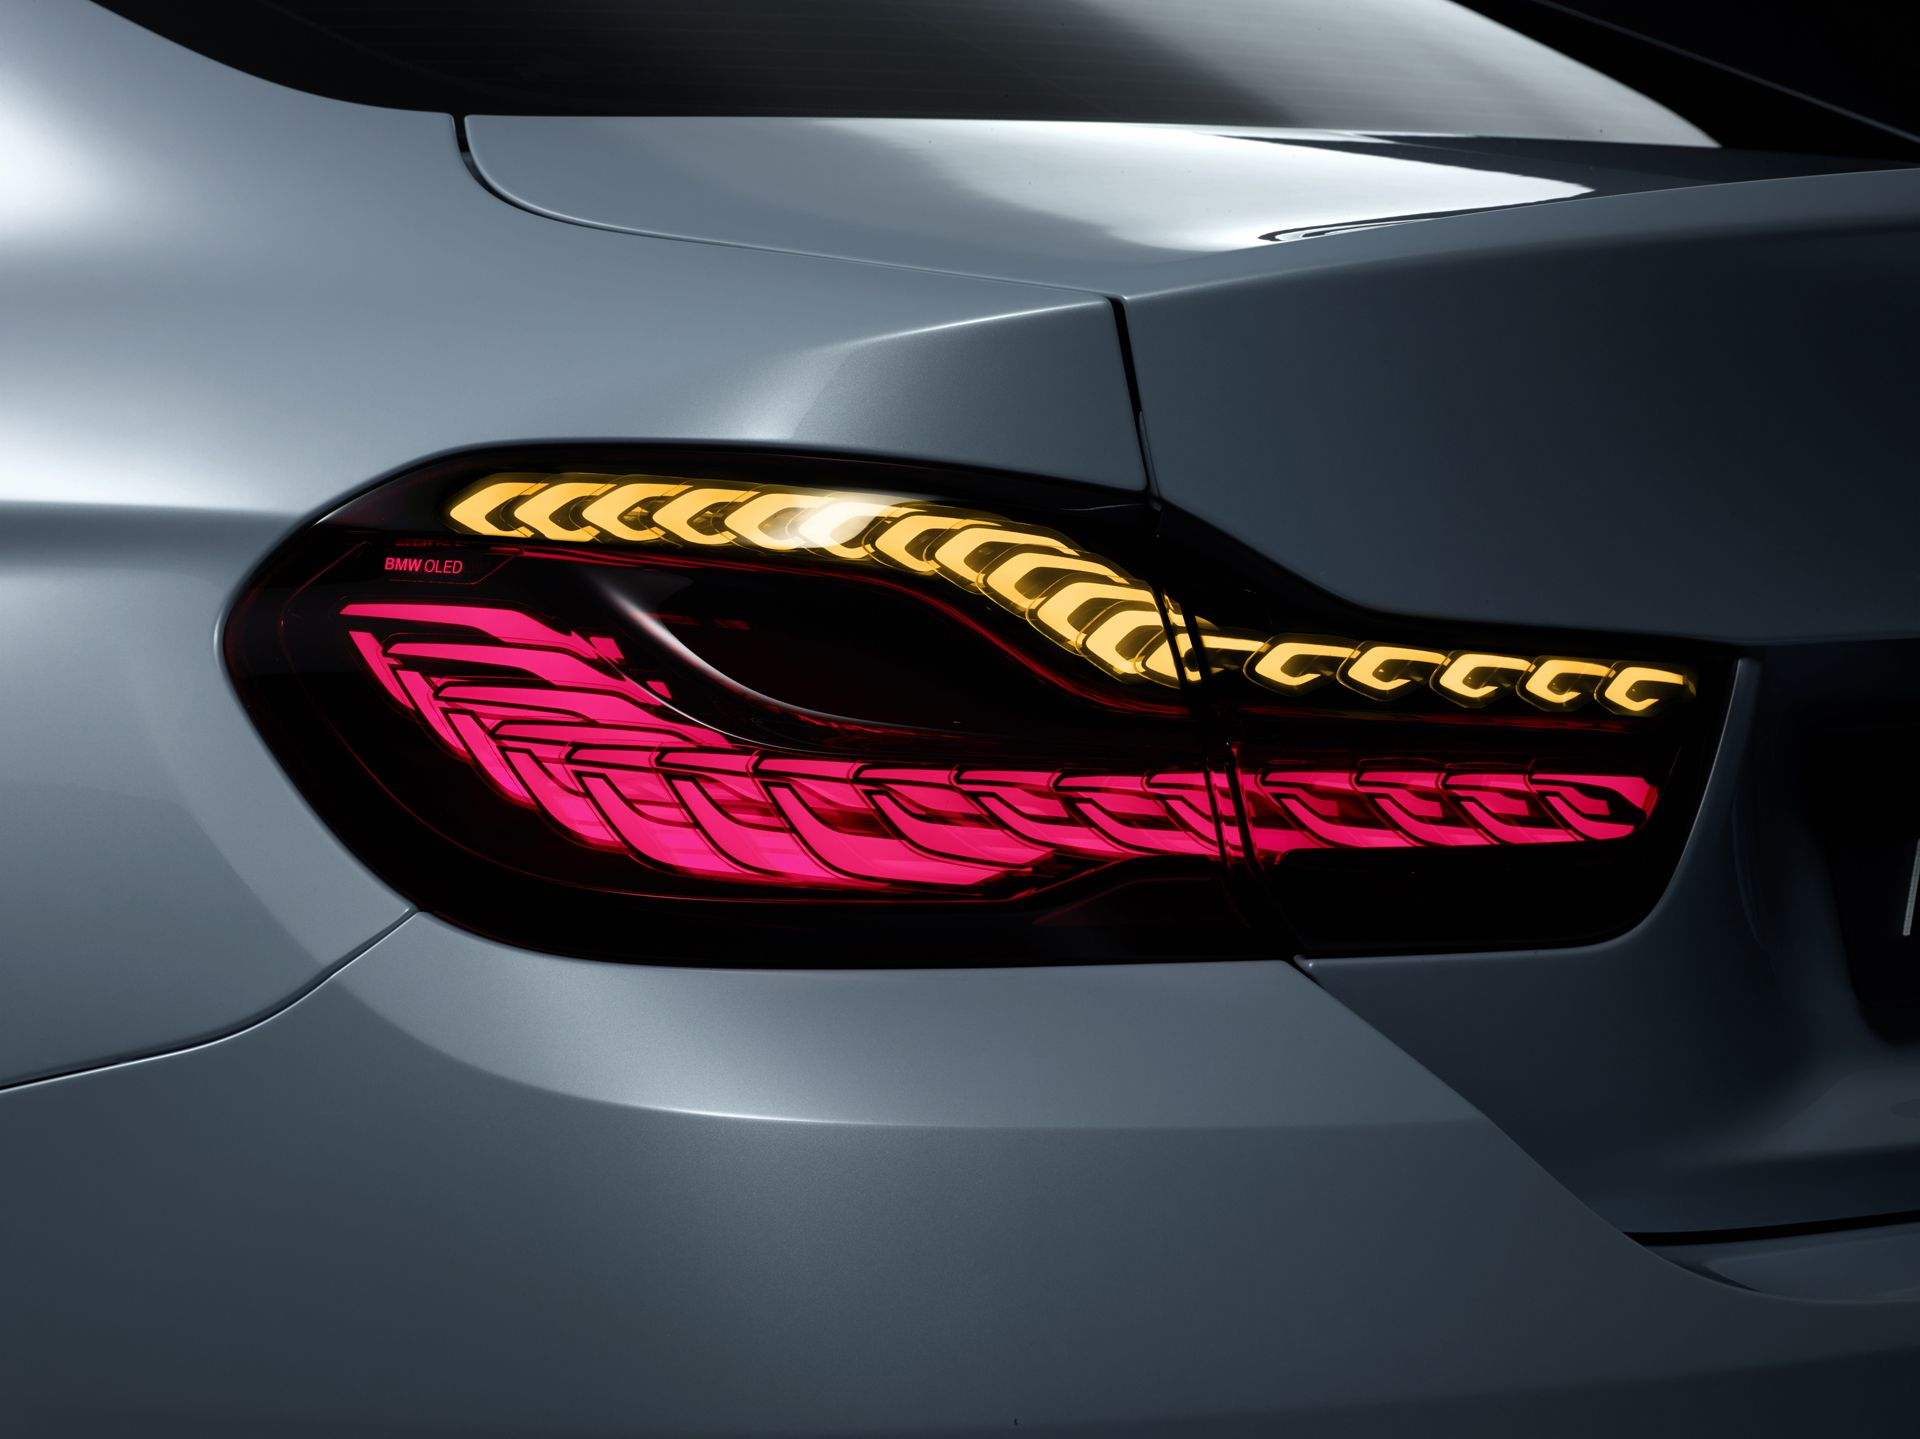 BMW M Concept Iconic Lights Introducing BMWs LaserLight And - Car laser light show